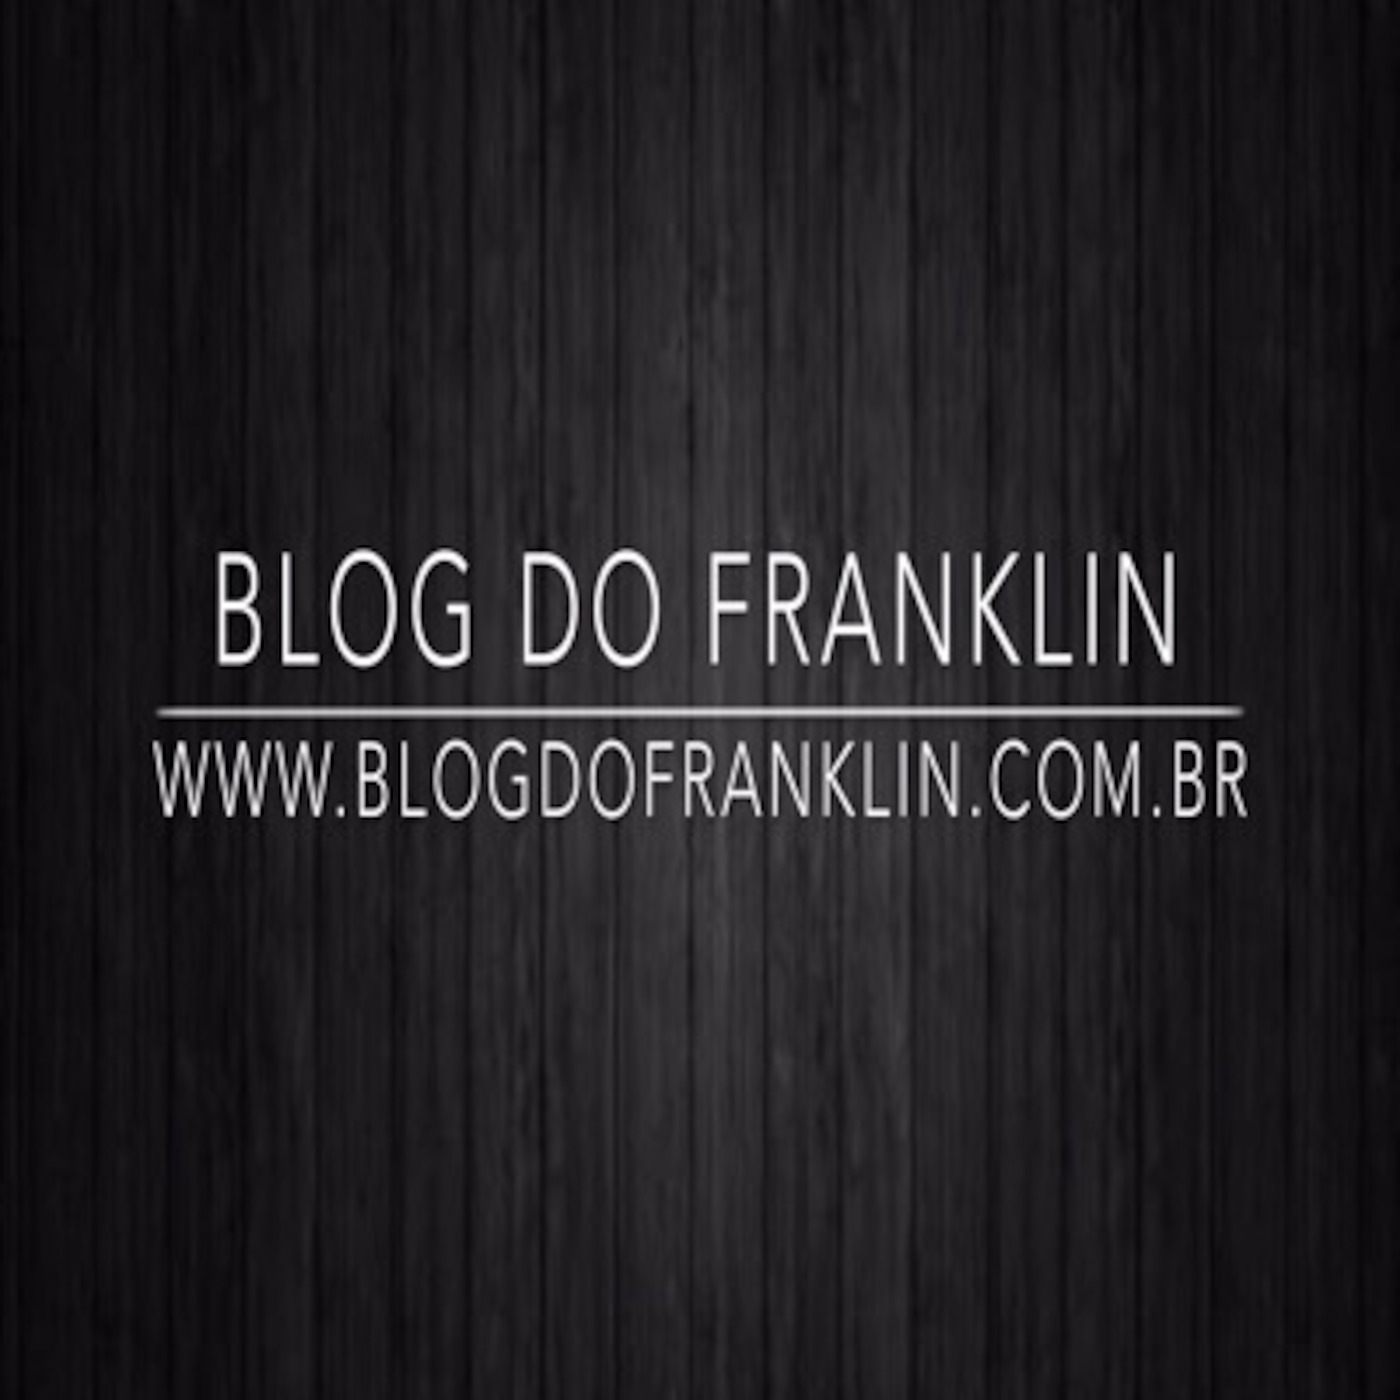 Blog do Franklin